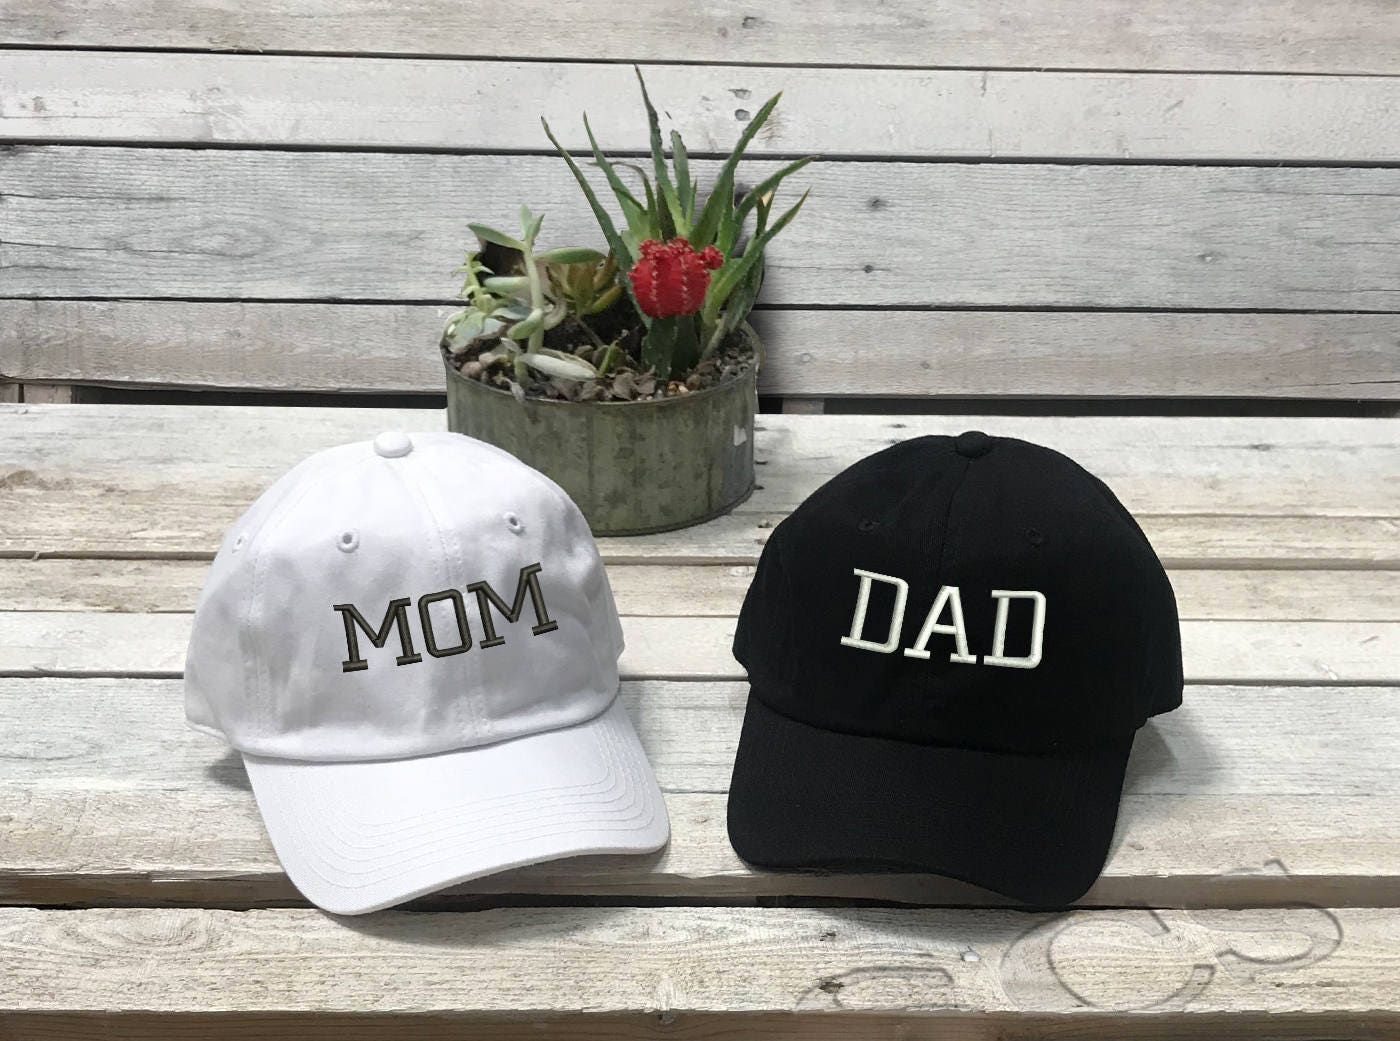 c8a5bb5f2ec4d DAD Hat MOM Hat New Parent Gift Gender Reveal Expecting Couples ...